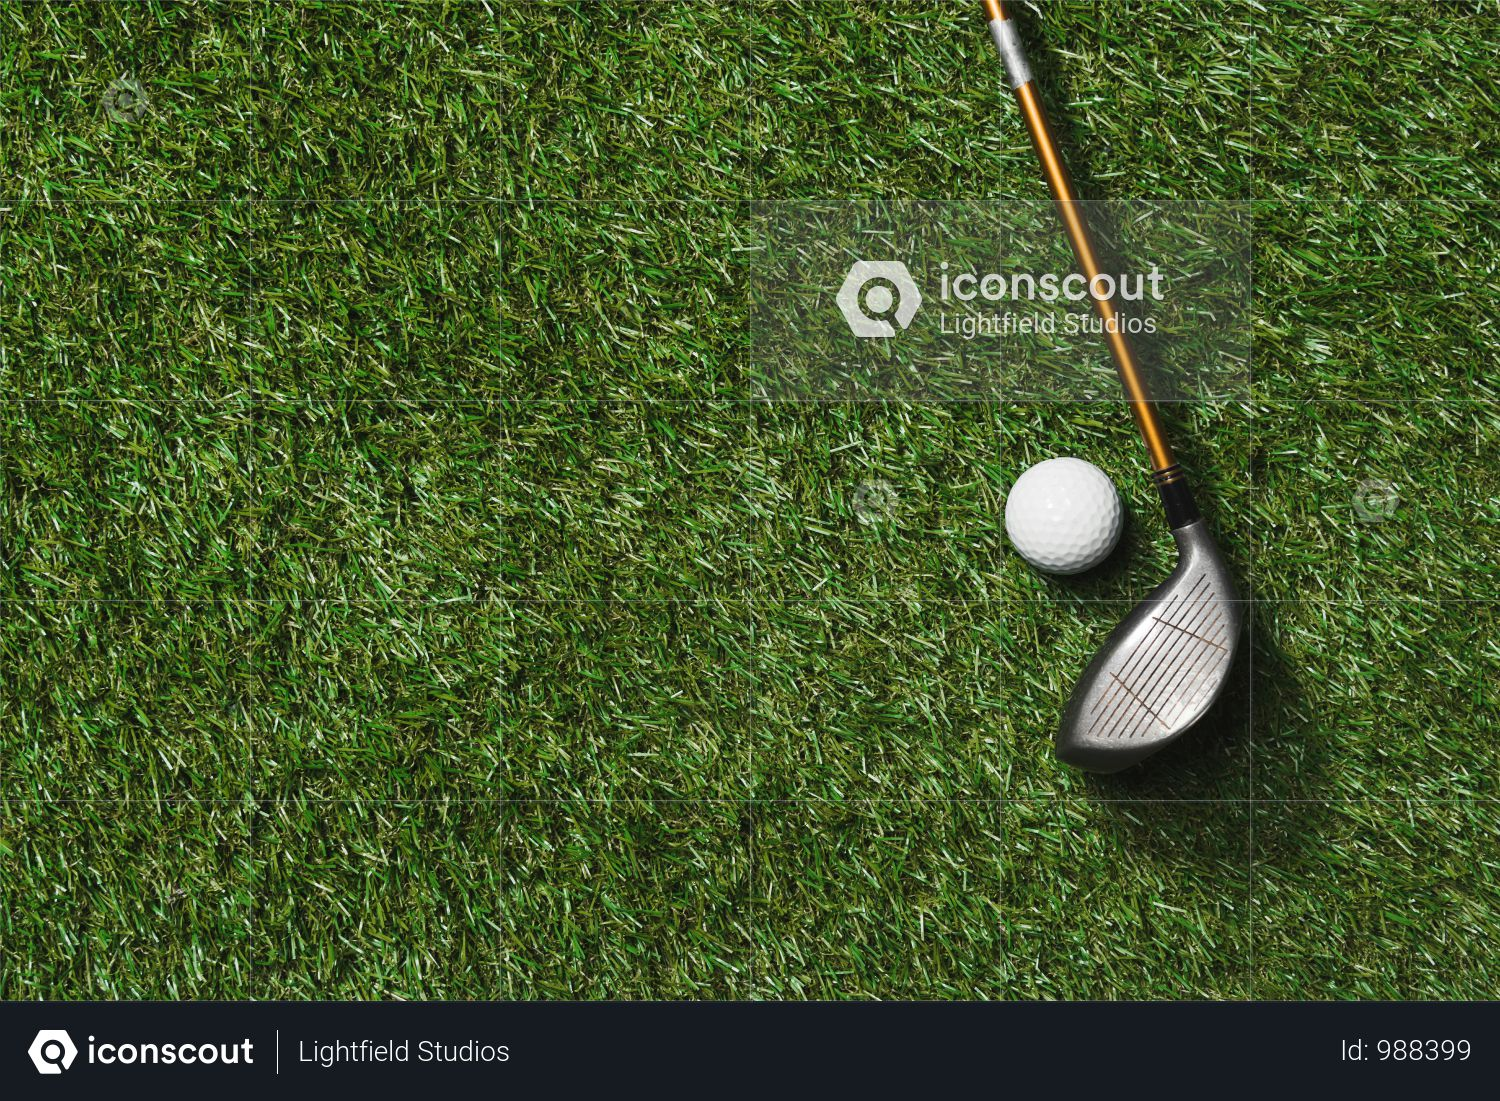 Top View Of Golf Club And Ball On Grass Field Photo